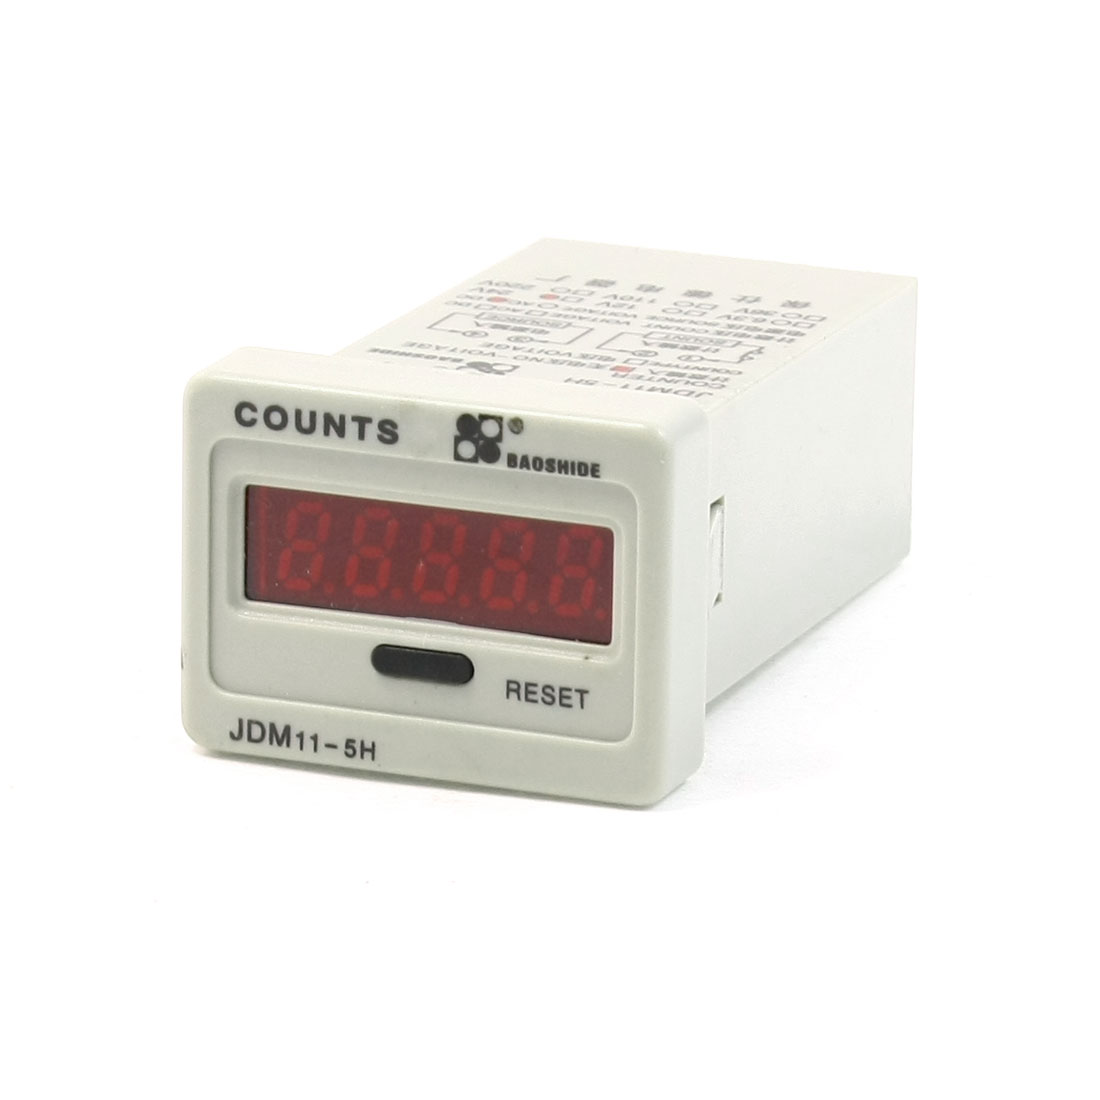 JDM11-5H DC 24V Resettable 5 Digits LED Display Electric Digital Counter